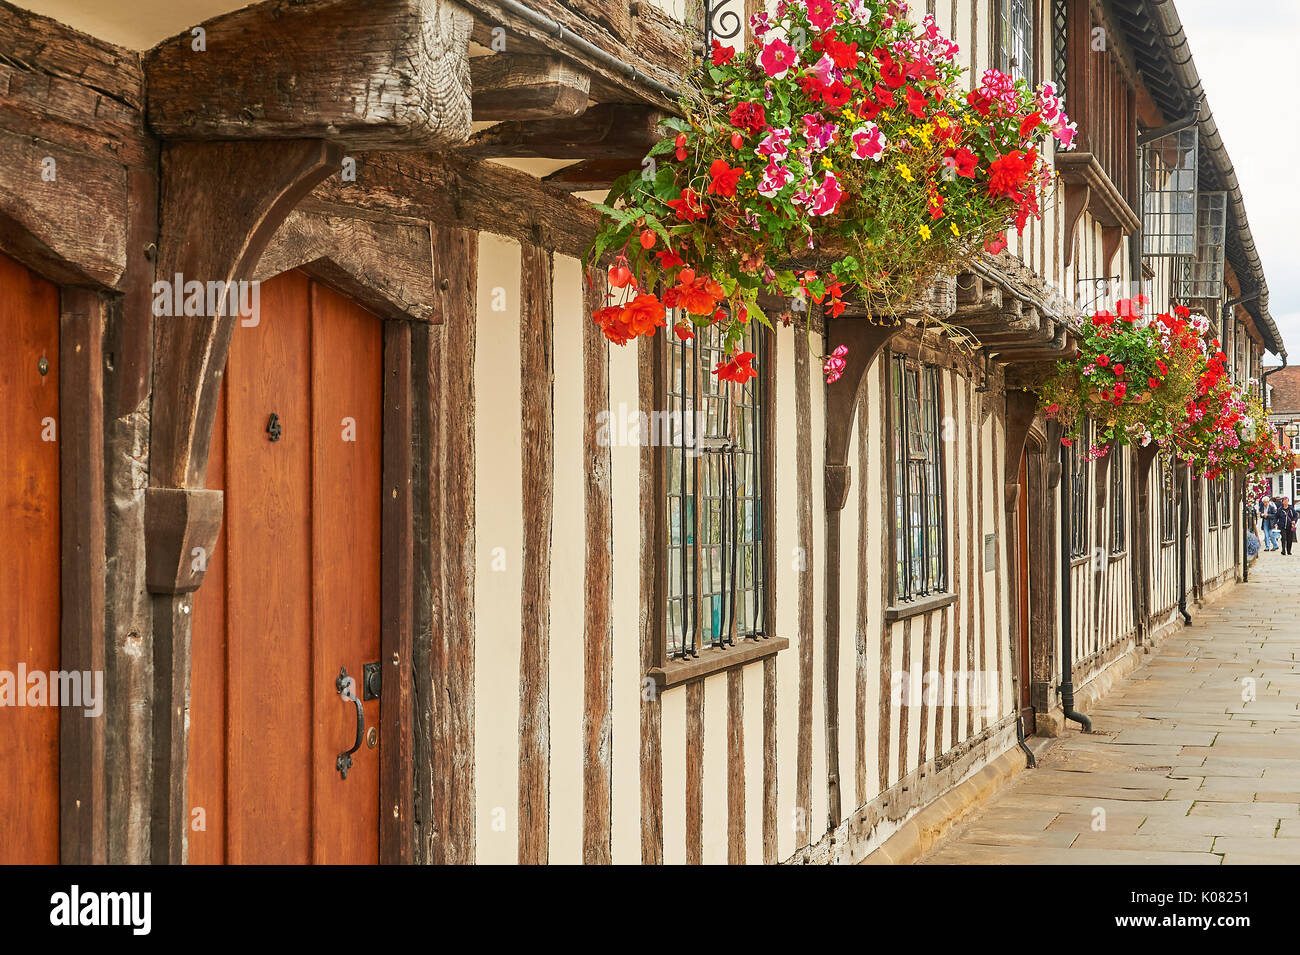 Half timbered almshouses decked out with colourful hanging baskets in Stratford upon Avon Stock Photo